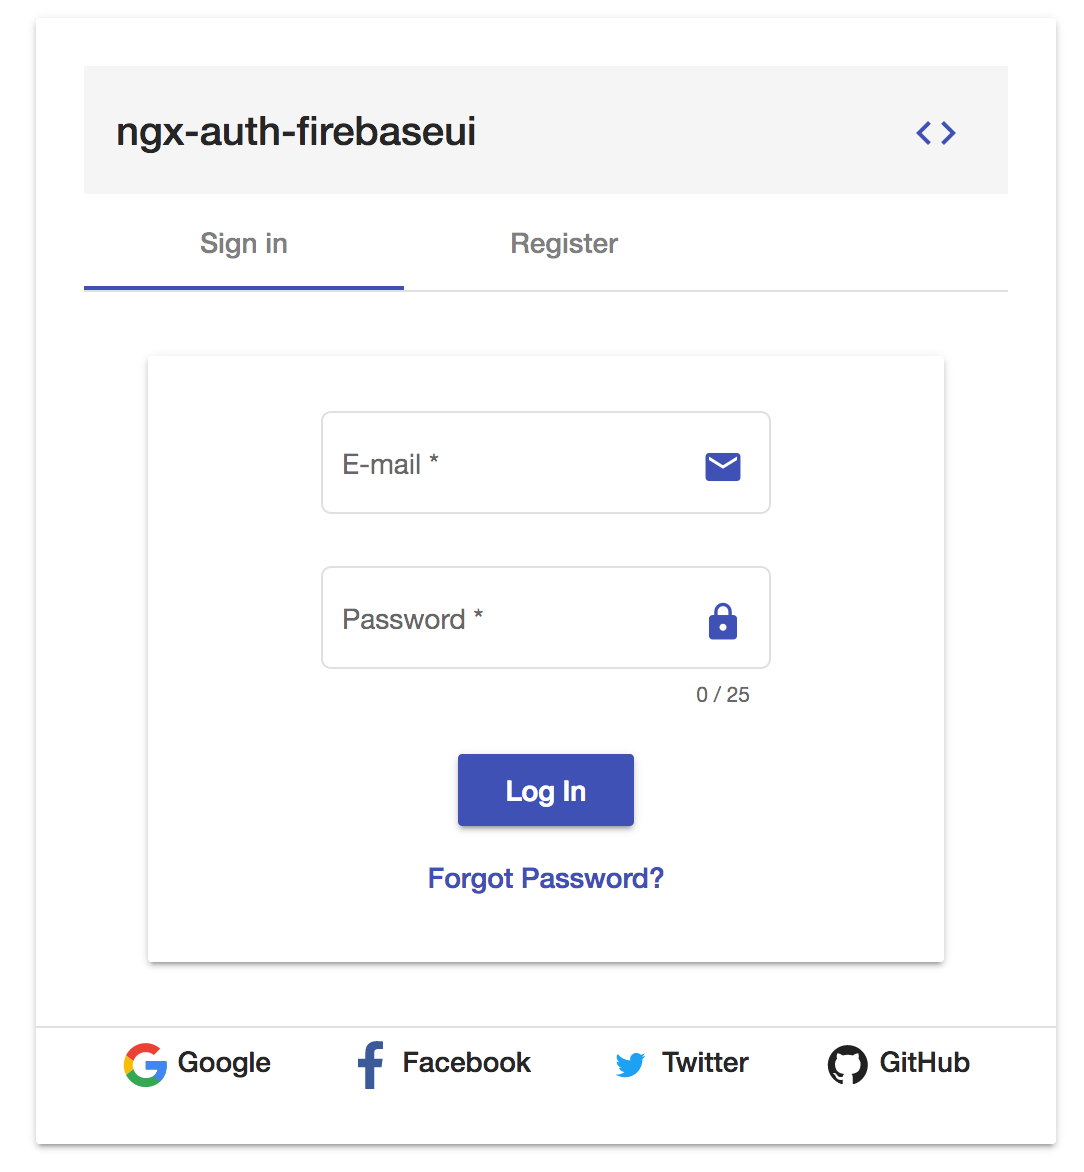 Angular Material User Interface for firebase authentication